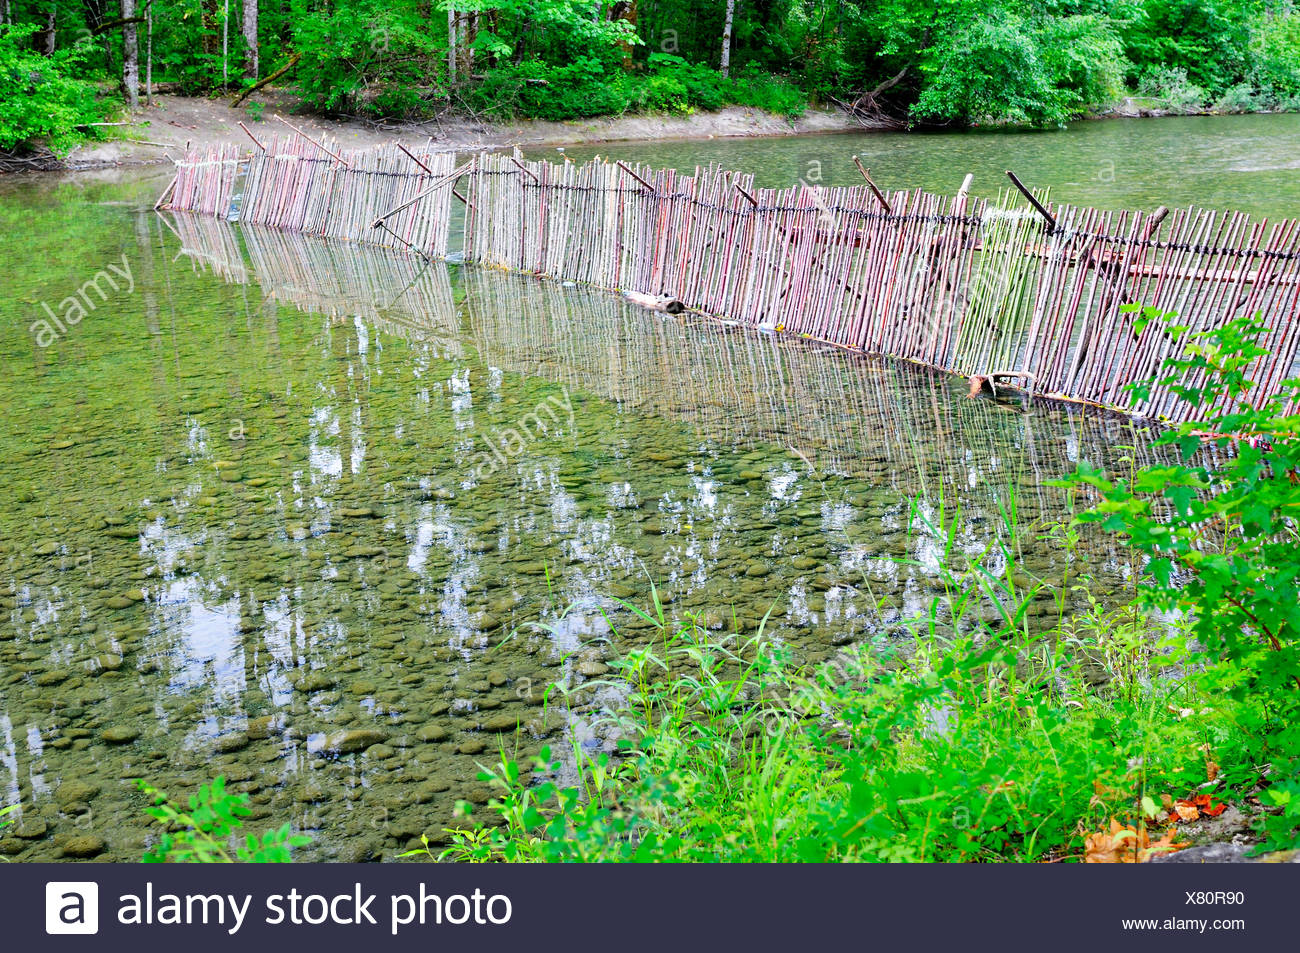 A First Nations fish weir across the Cowichan River near Duncan, BC. - Stock Image